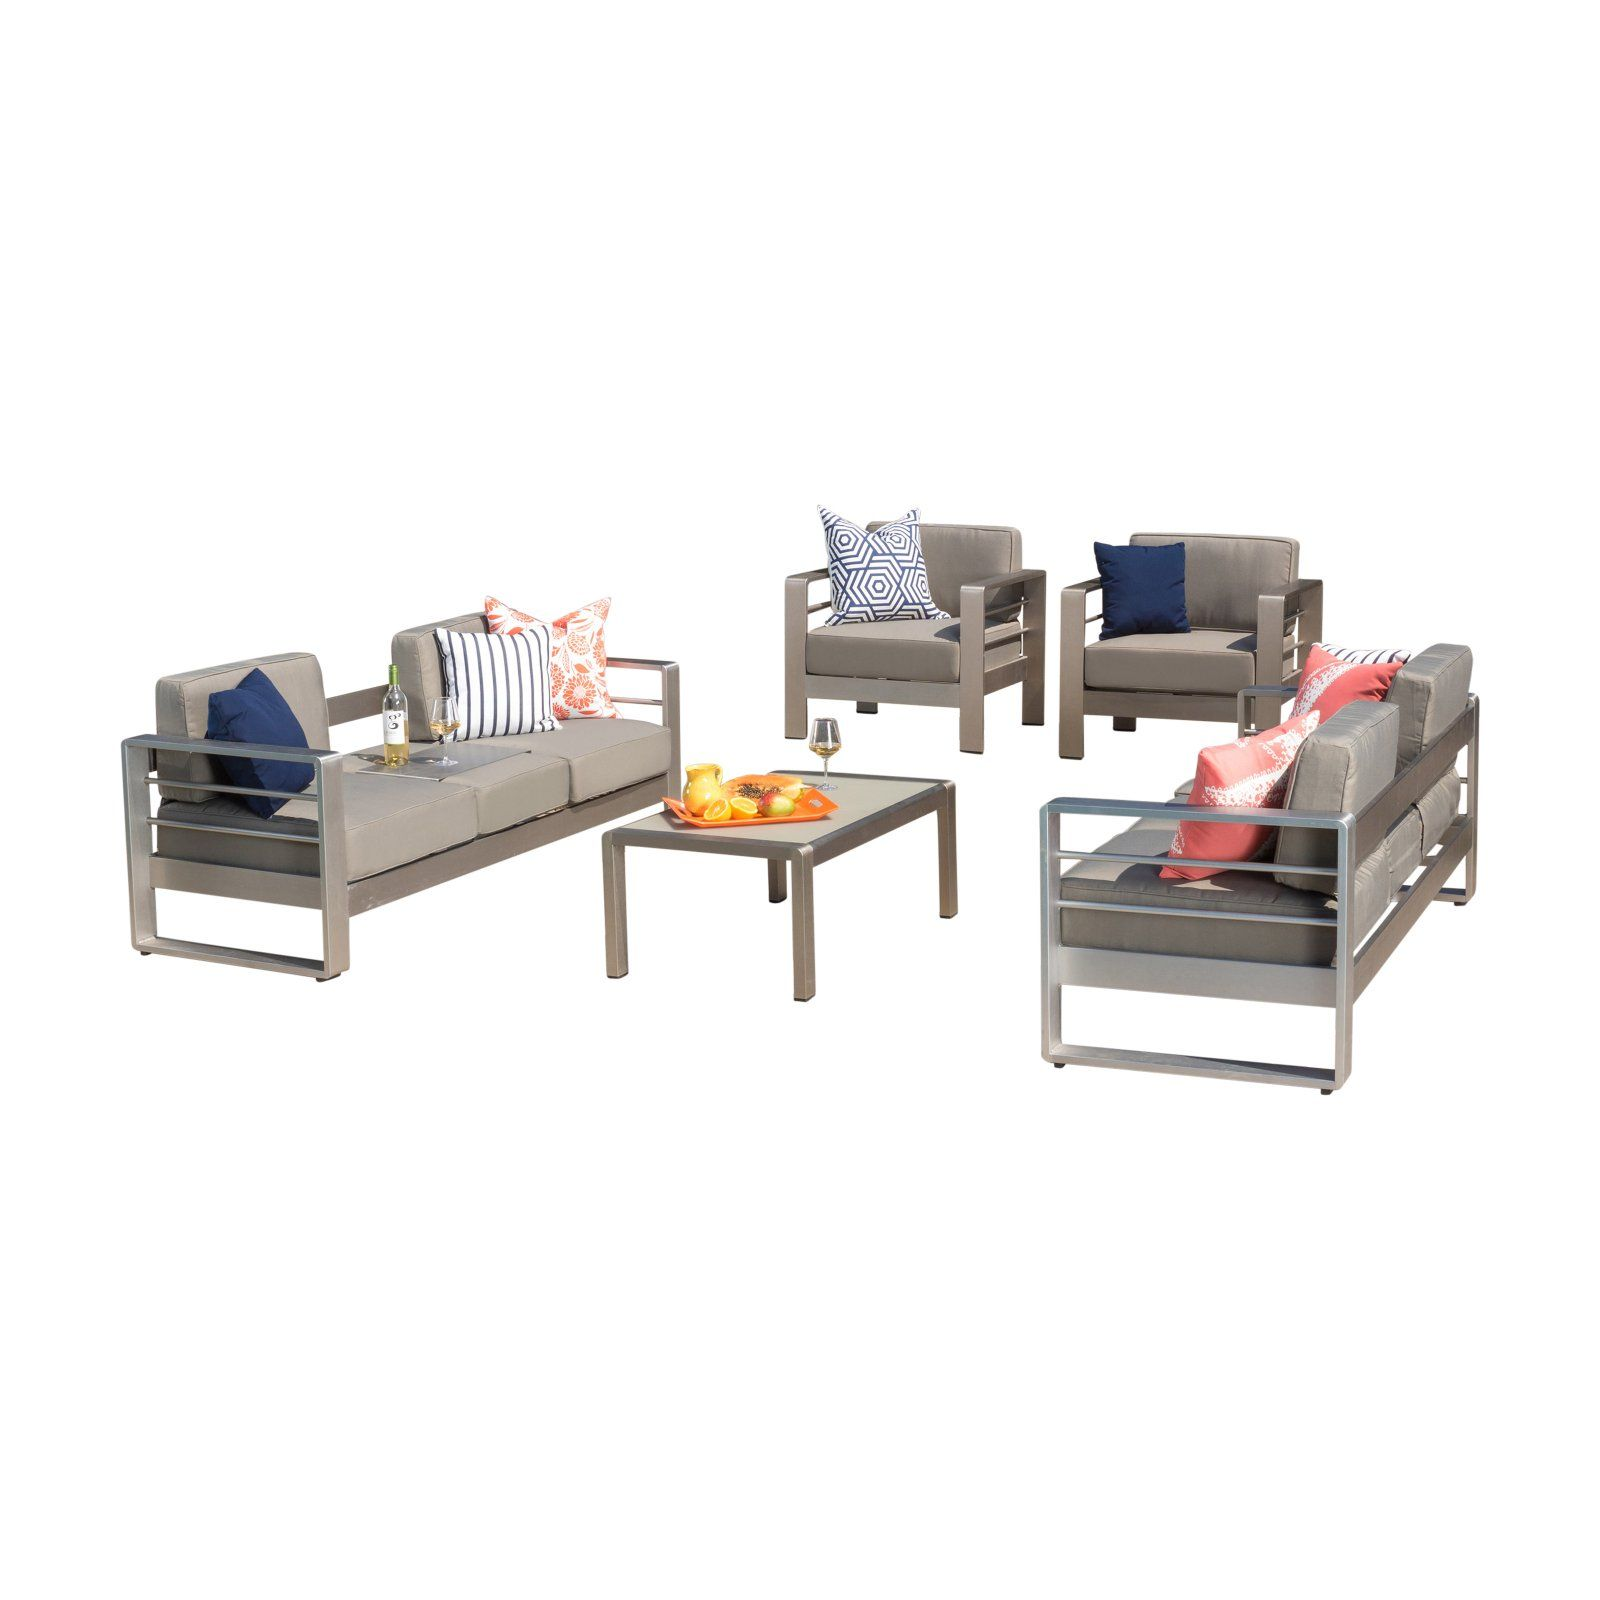 Outdoor Best Selling Home Cape Coral Aluminum 5 Piece Patio Conversation Set In 2019 Outdoor Furniture Sets Home Furniture